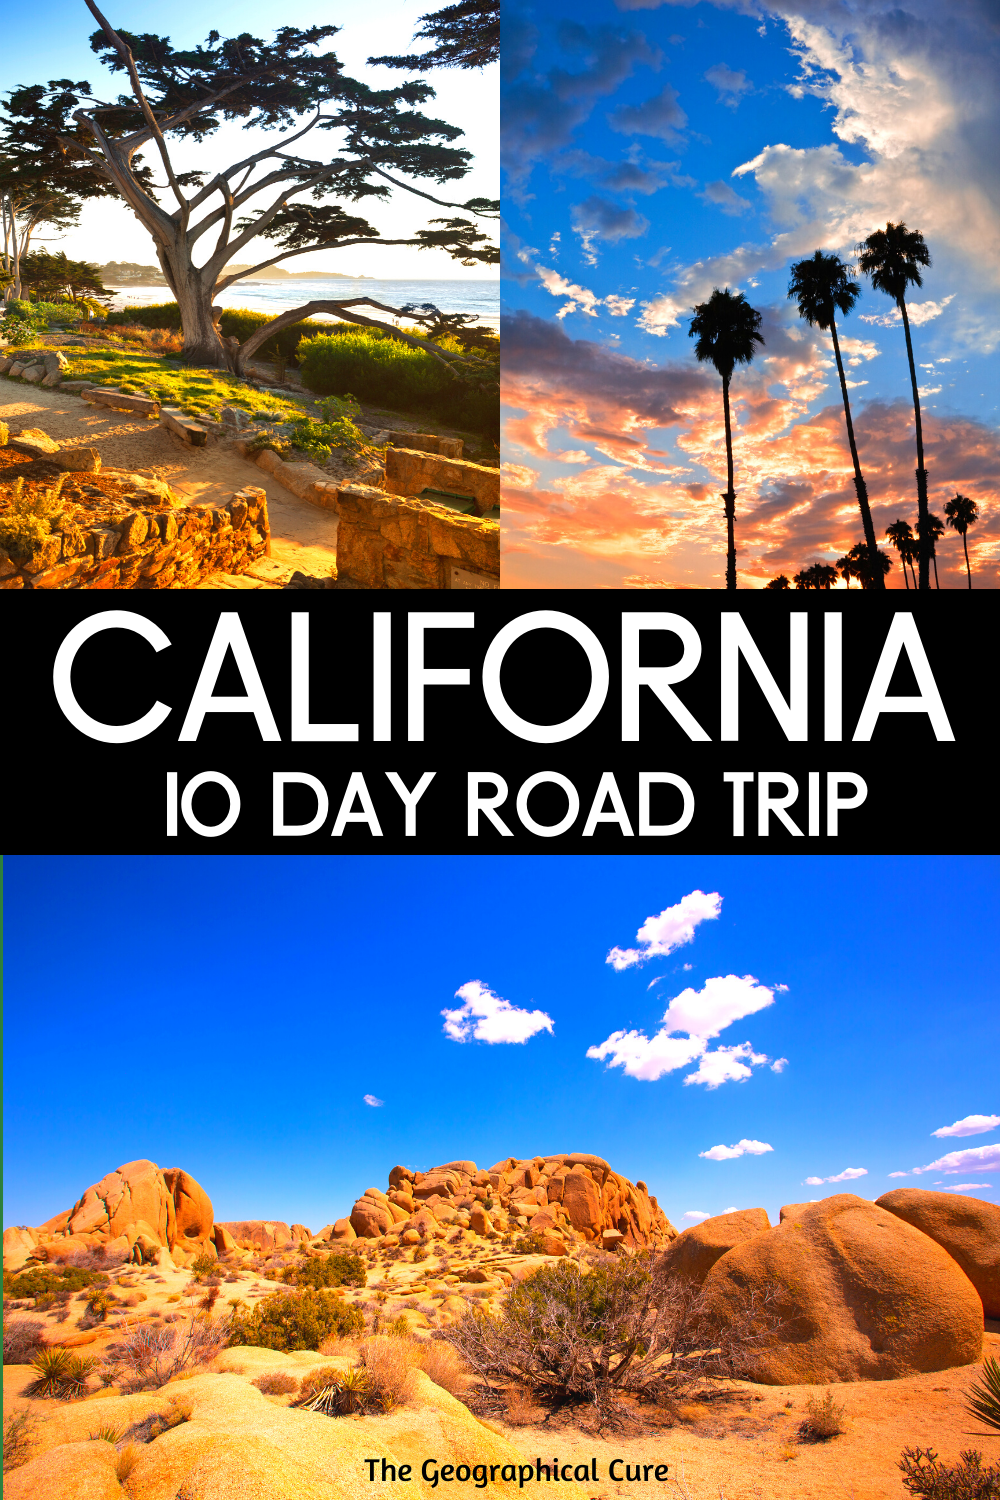 Amazing 10 Day Itinerary for a Road Trip in Southern California